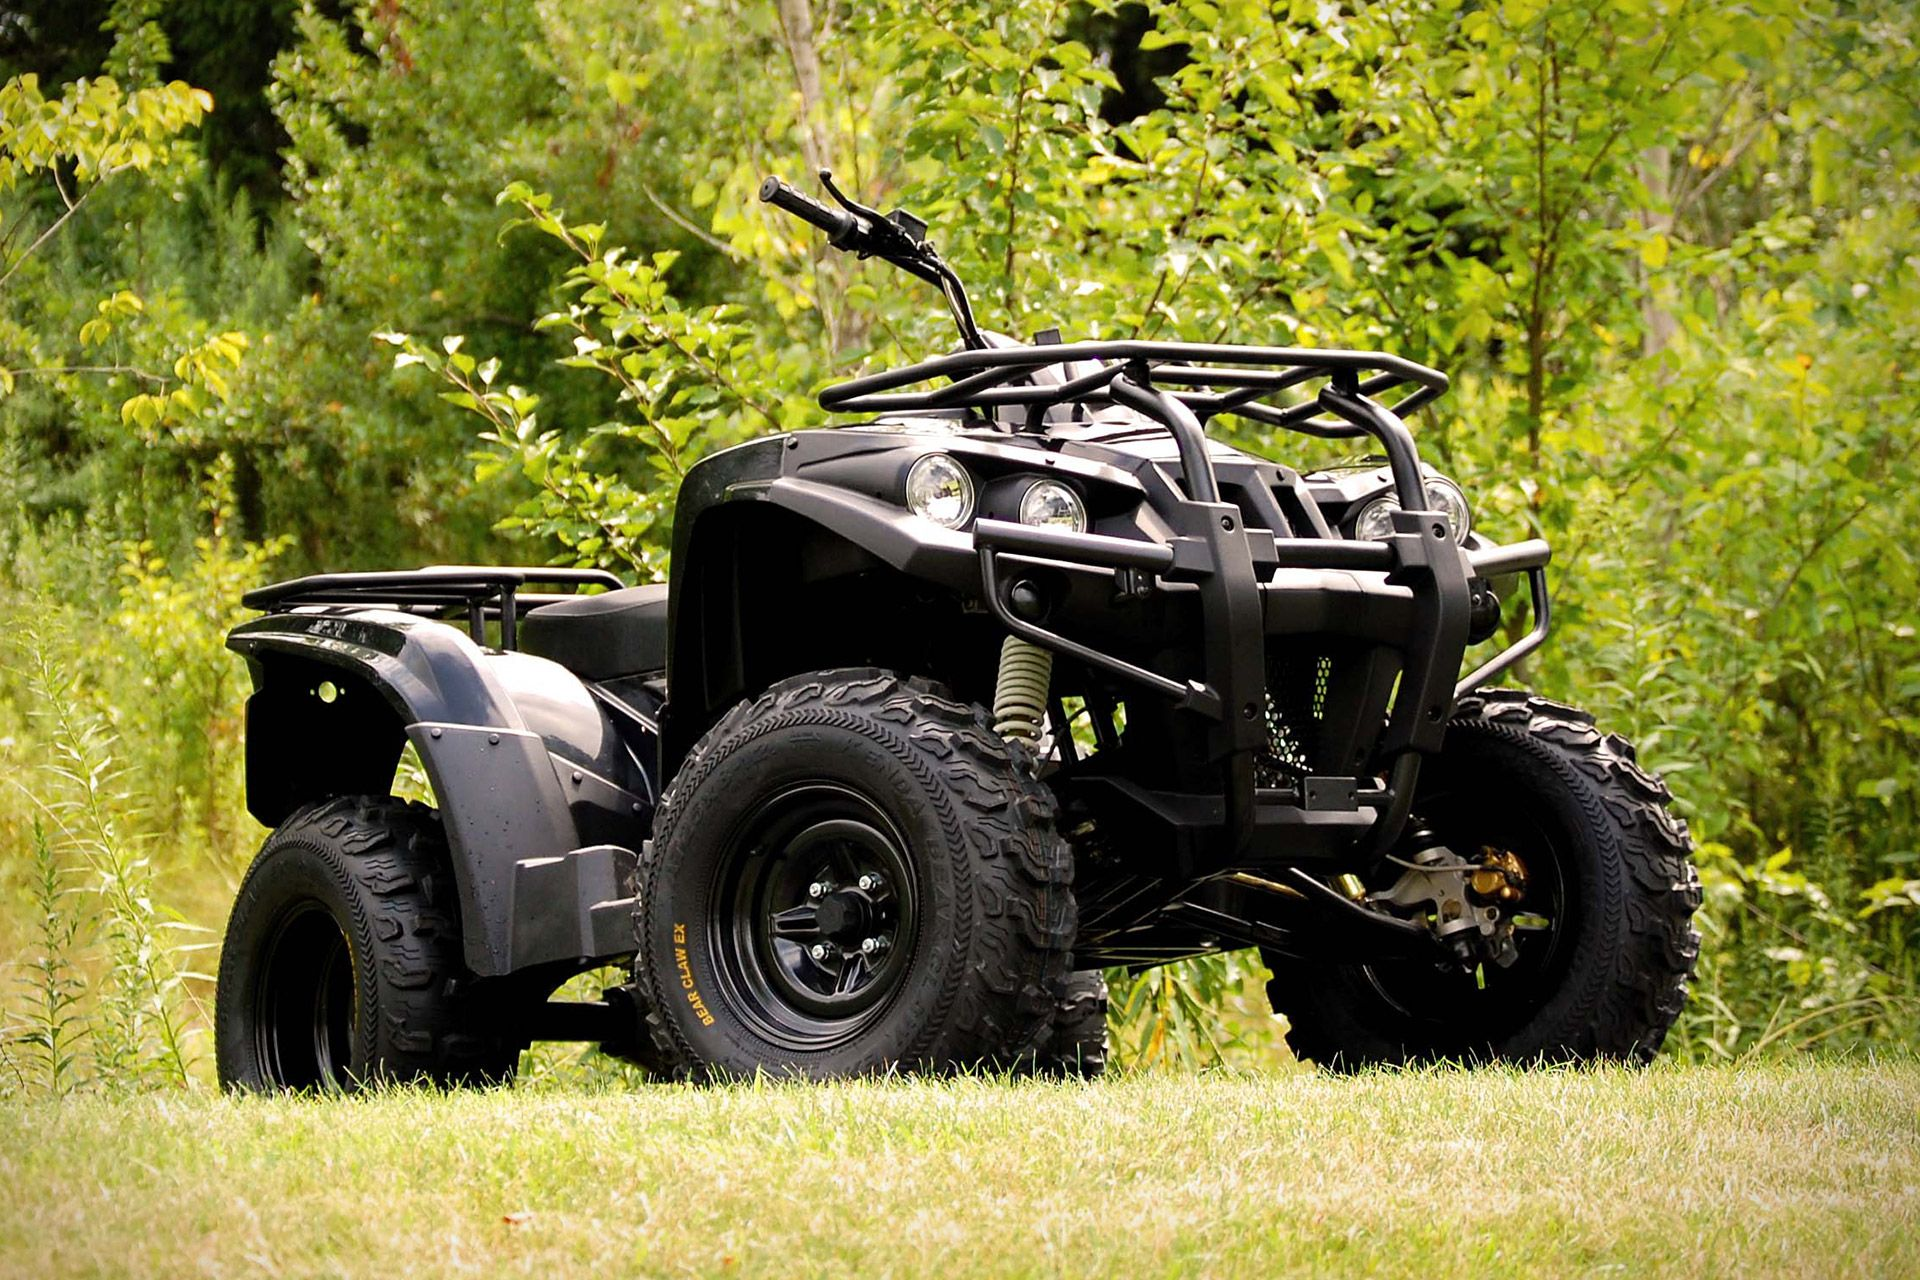 DRR Stealth Electric ATV รถ atv